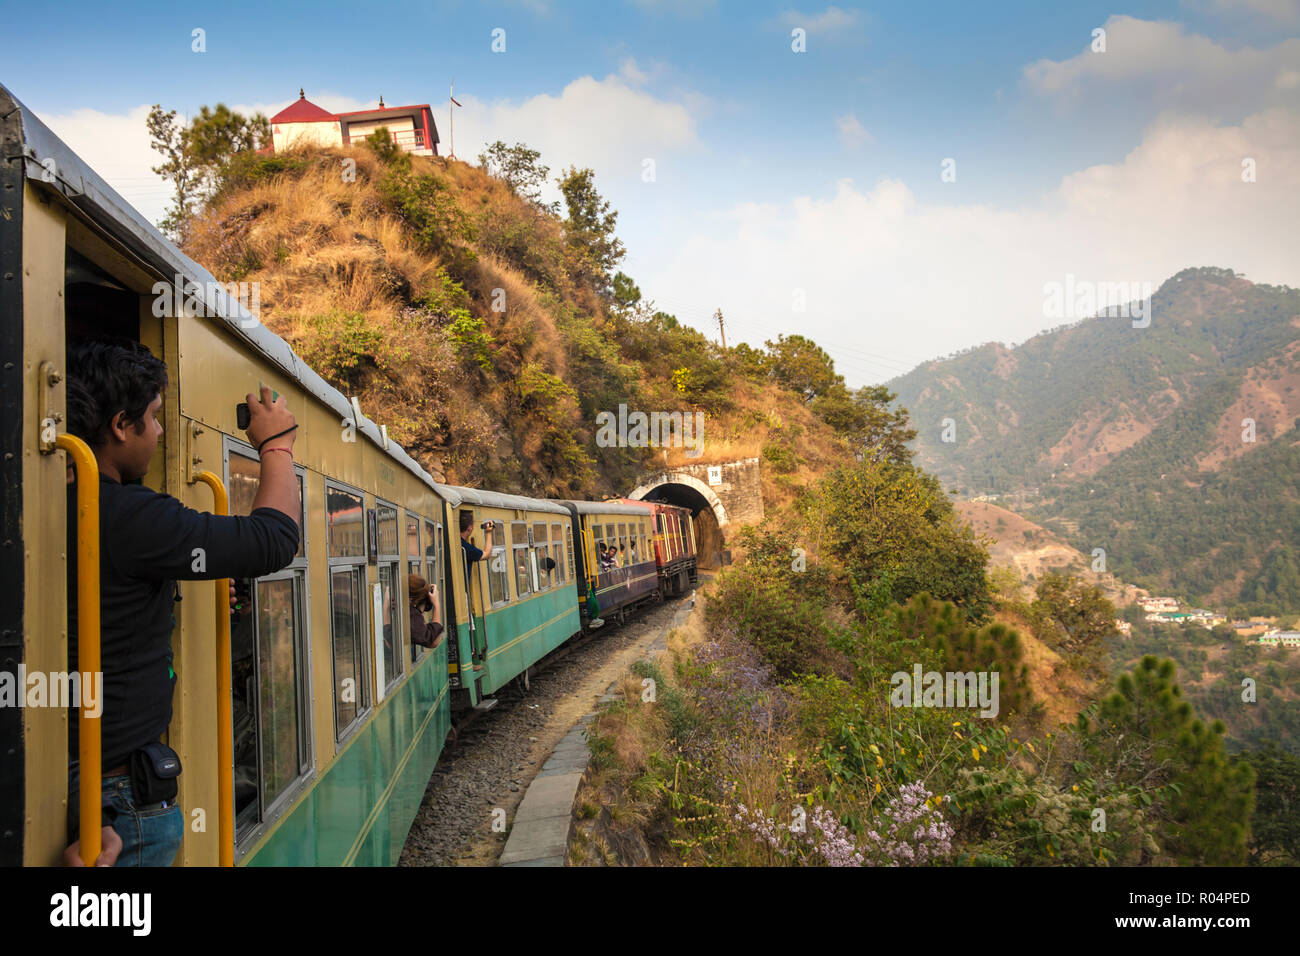 The Himalayan Queen toy train approaching a tunnel, on the Kalka to Shimla Railway, UNESCO World Heritage Site, Northwest India, Asia - Stock Image